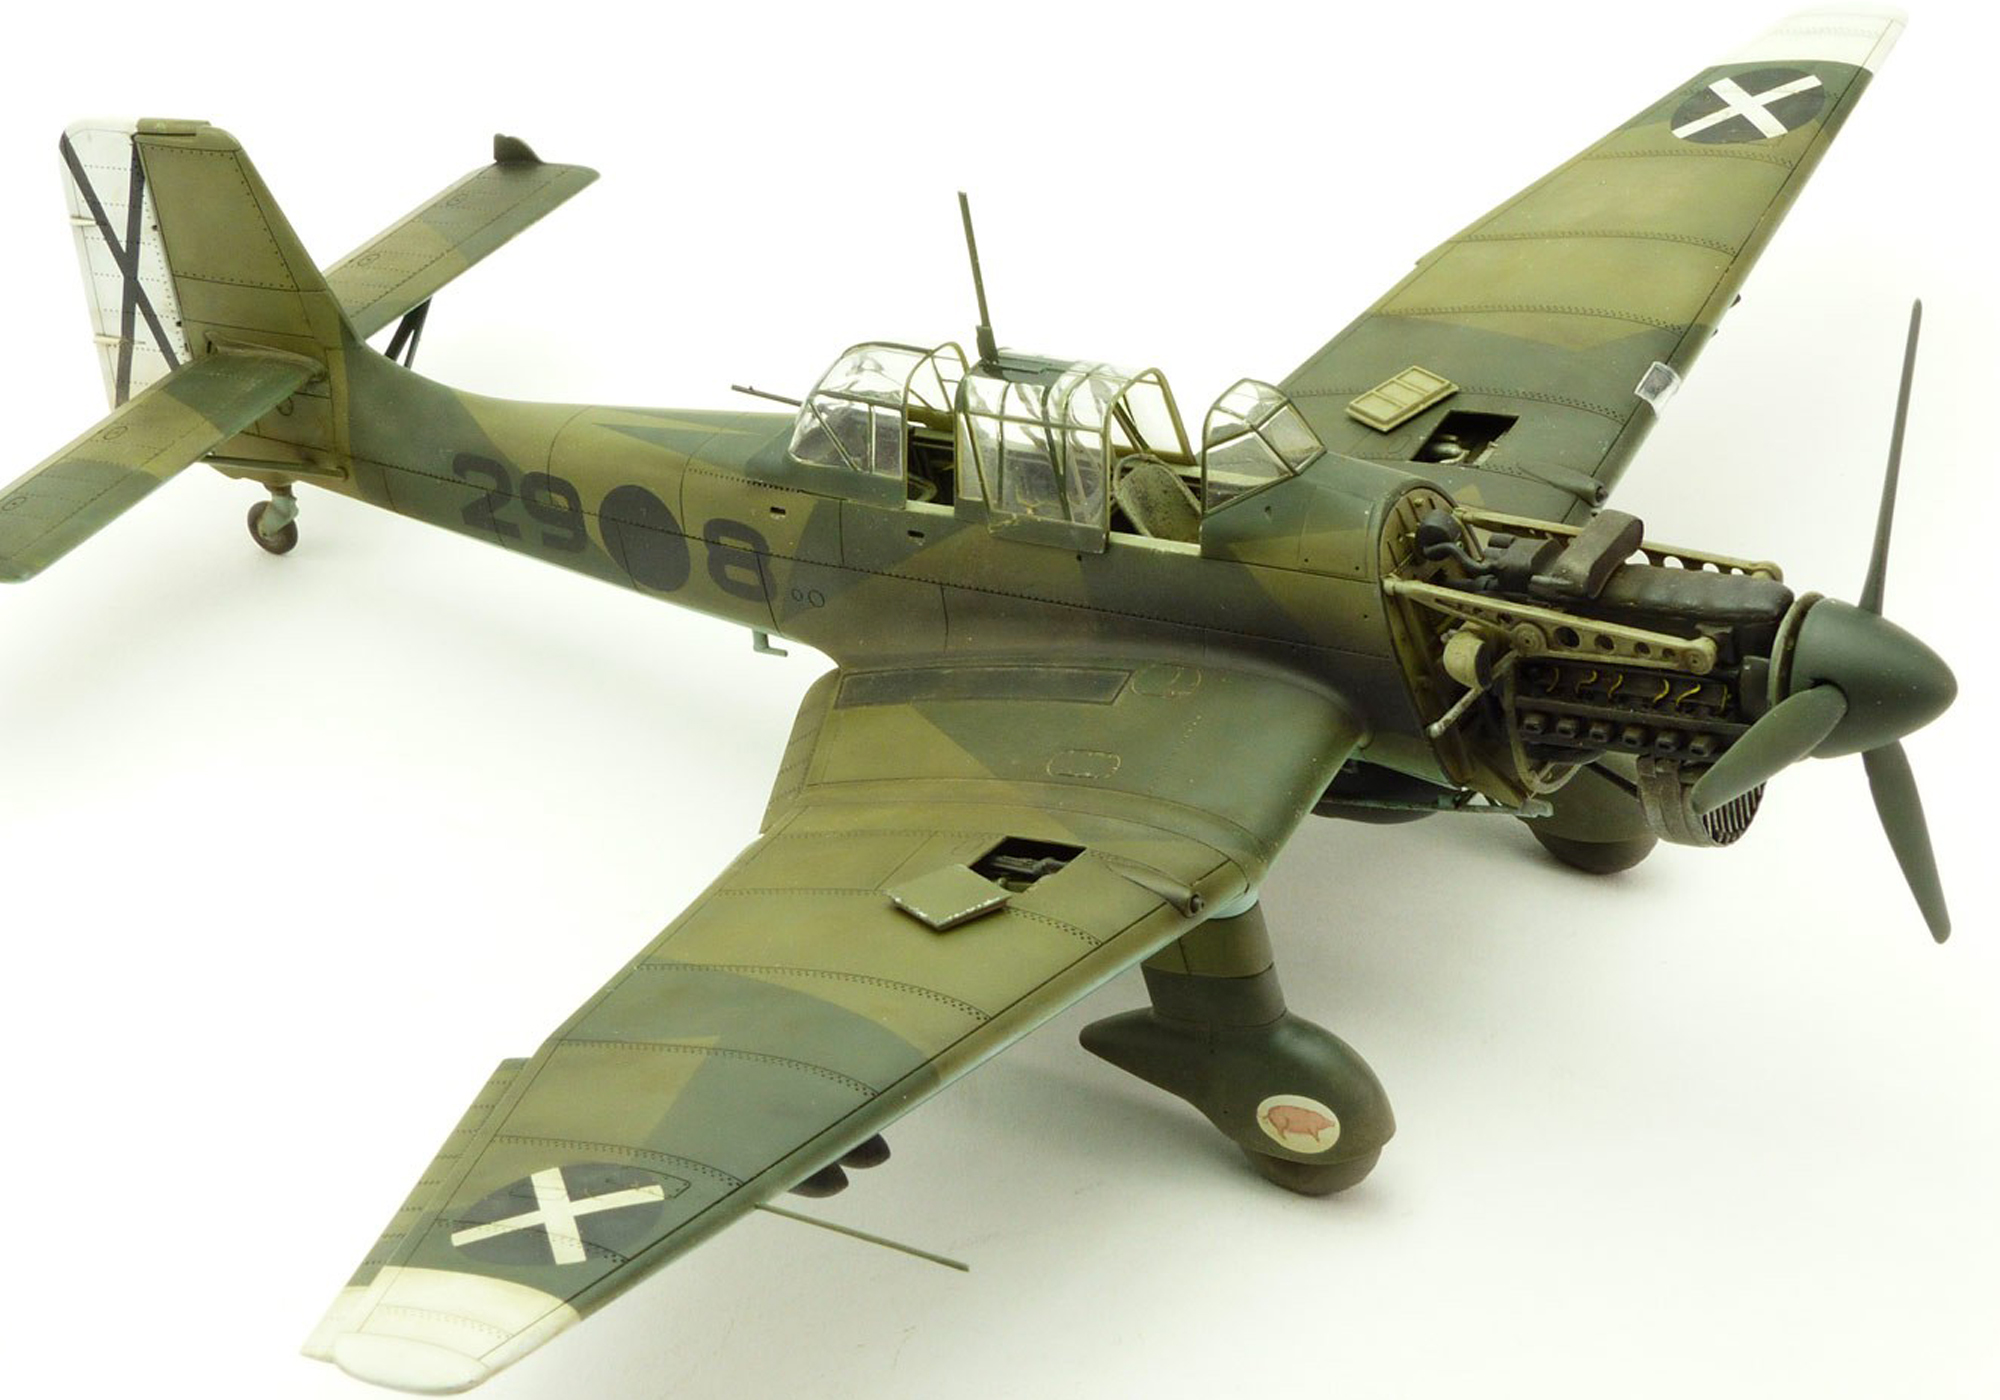 JUNKERS JU-87 B.R STUKA WWII DIVE BOMBER - AIRFIX 1/72 scale